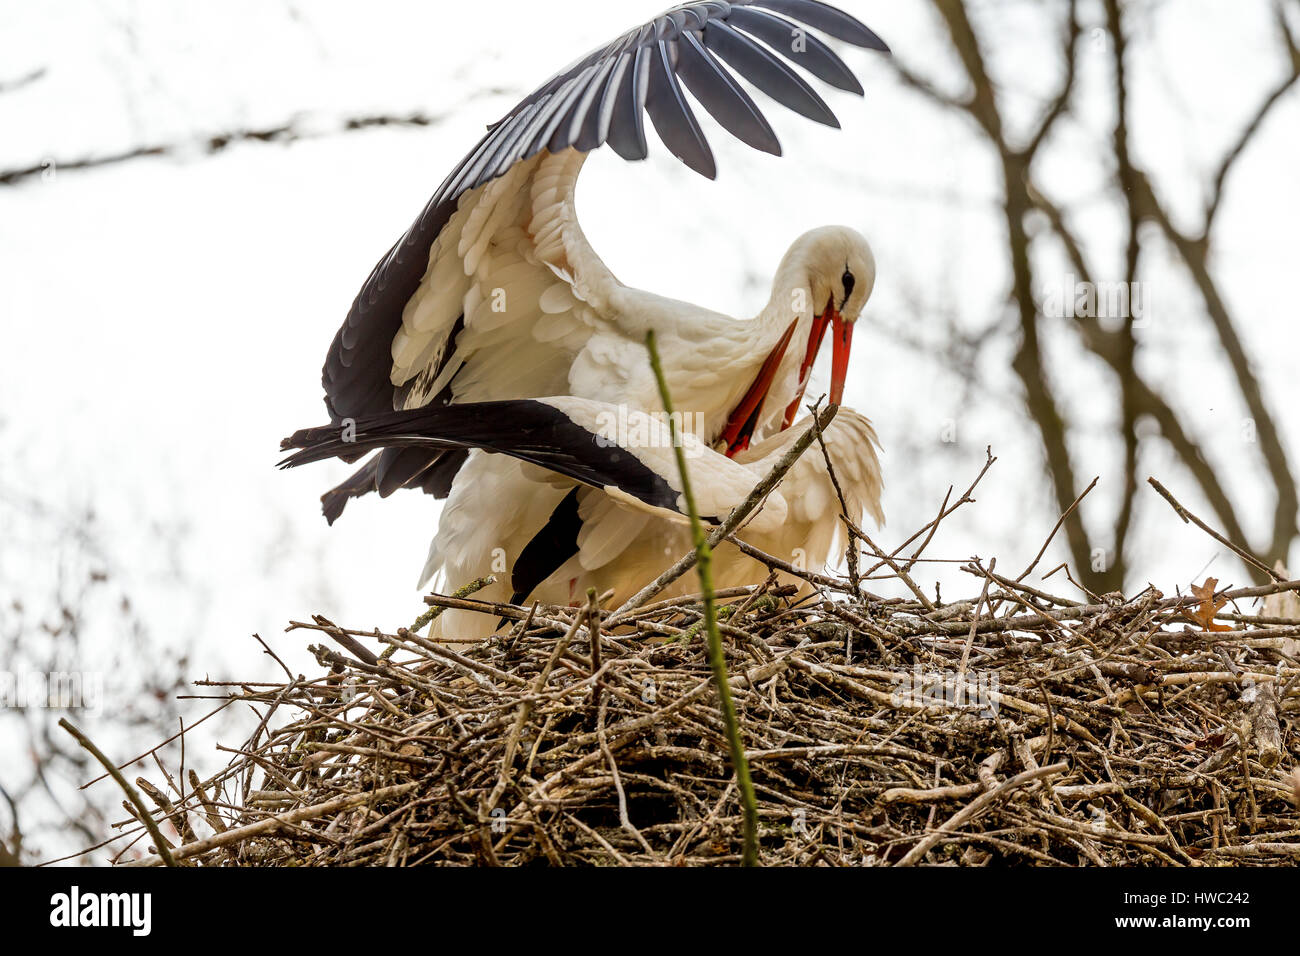 White stork courtship and mating behaviour. - Stock Image